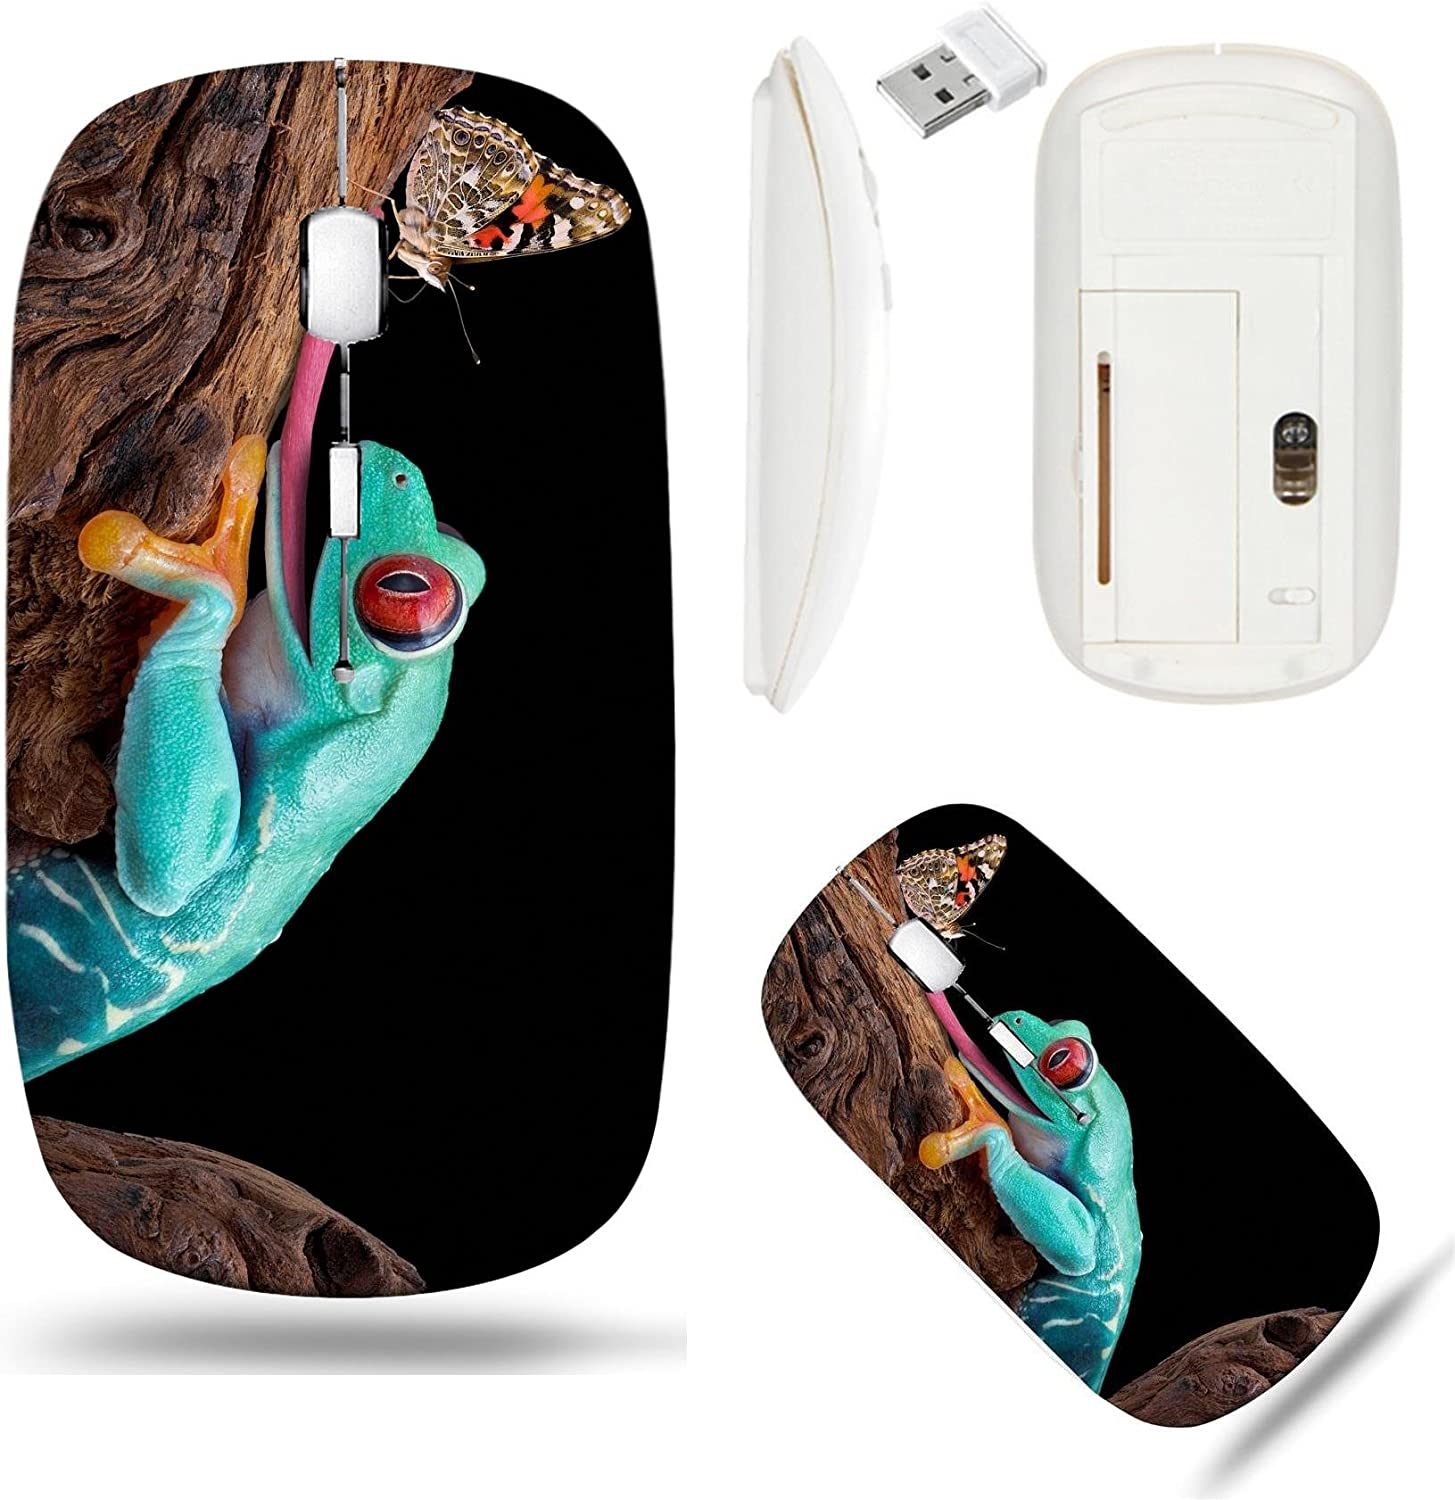 Liili Wireless Mouse White Base Travel 2.4G Challenge the lowest price of Japan U Mice with Ranking TOP3